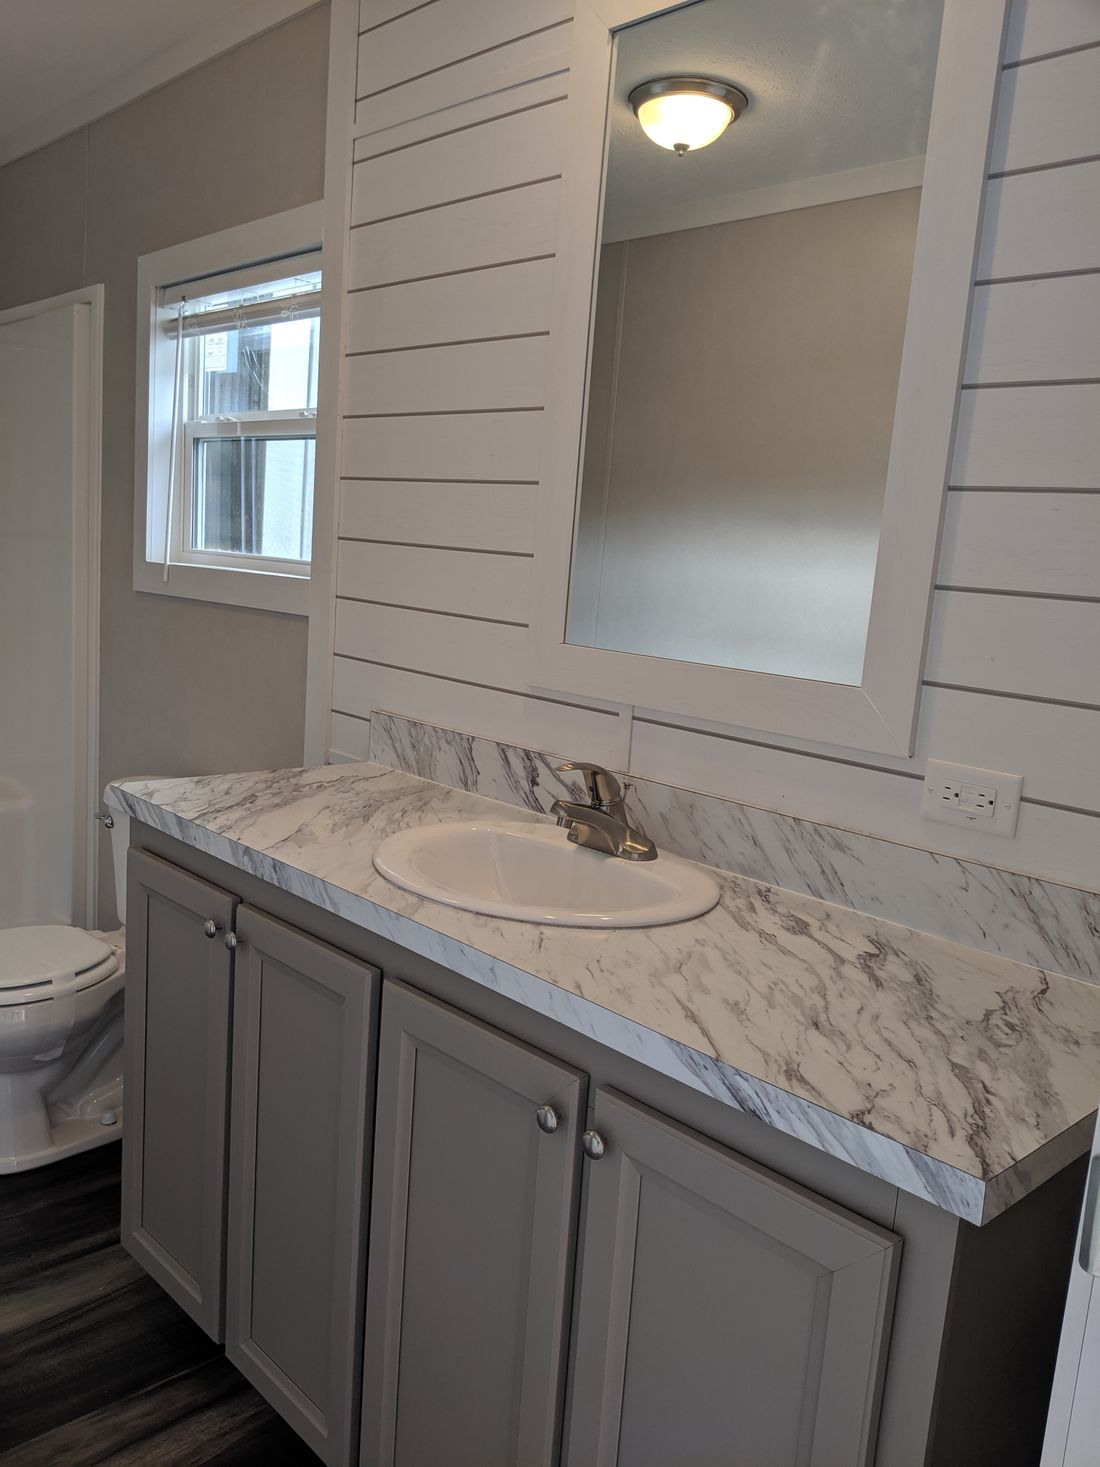 The CS2840-A Master Bathroom. This Manufactured Mobile Home features 3 bedrooms and 2 baths.